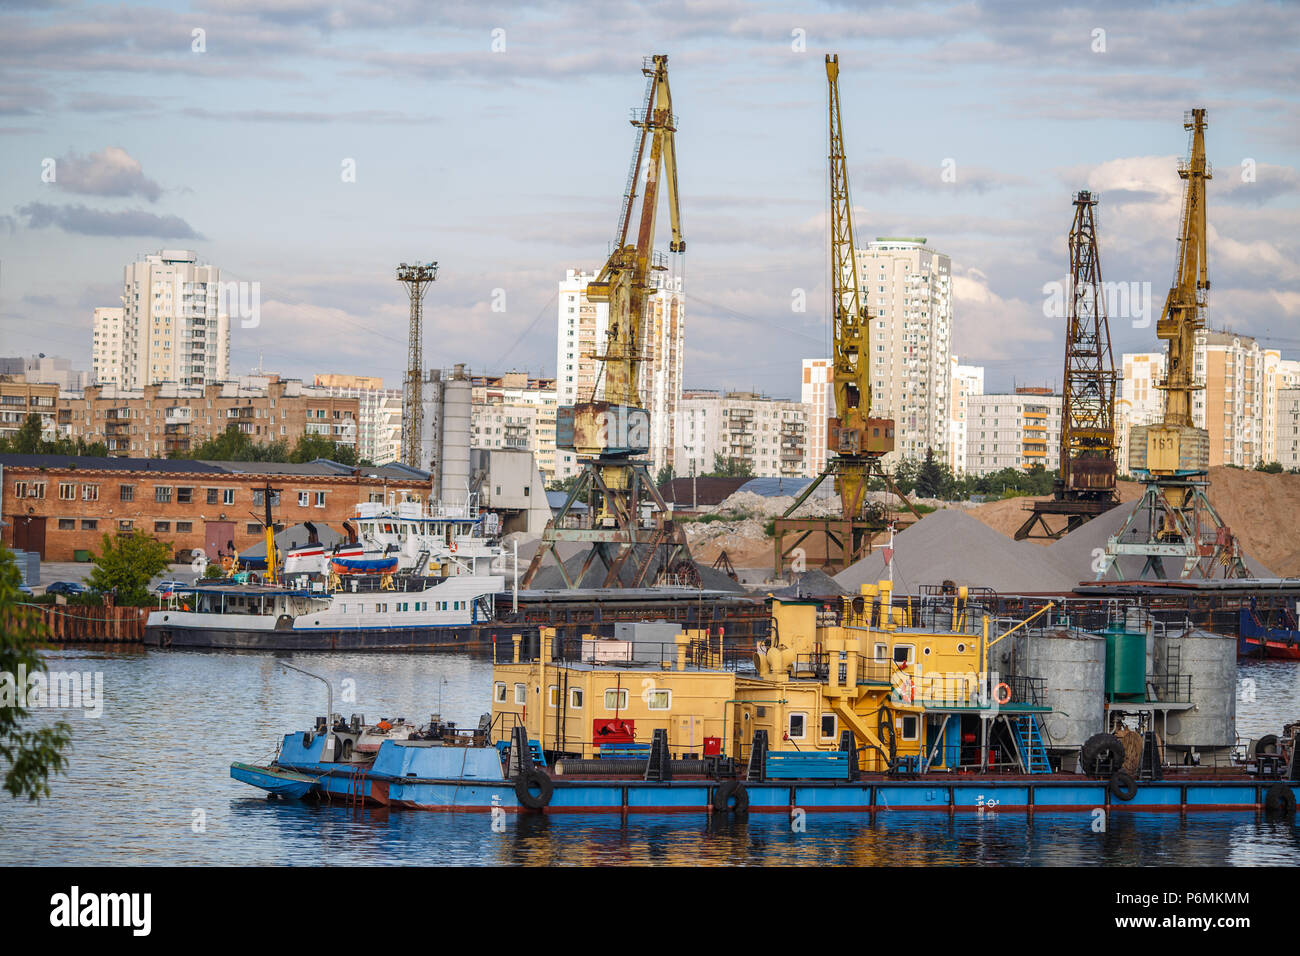 Loading and unloading of sand by crane. - Stock Image